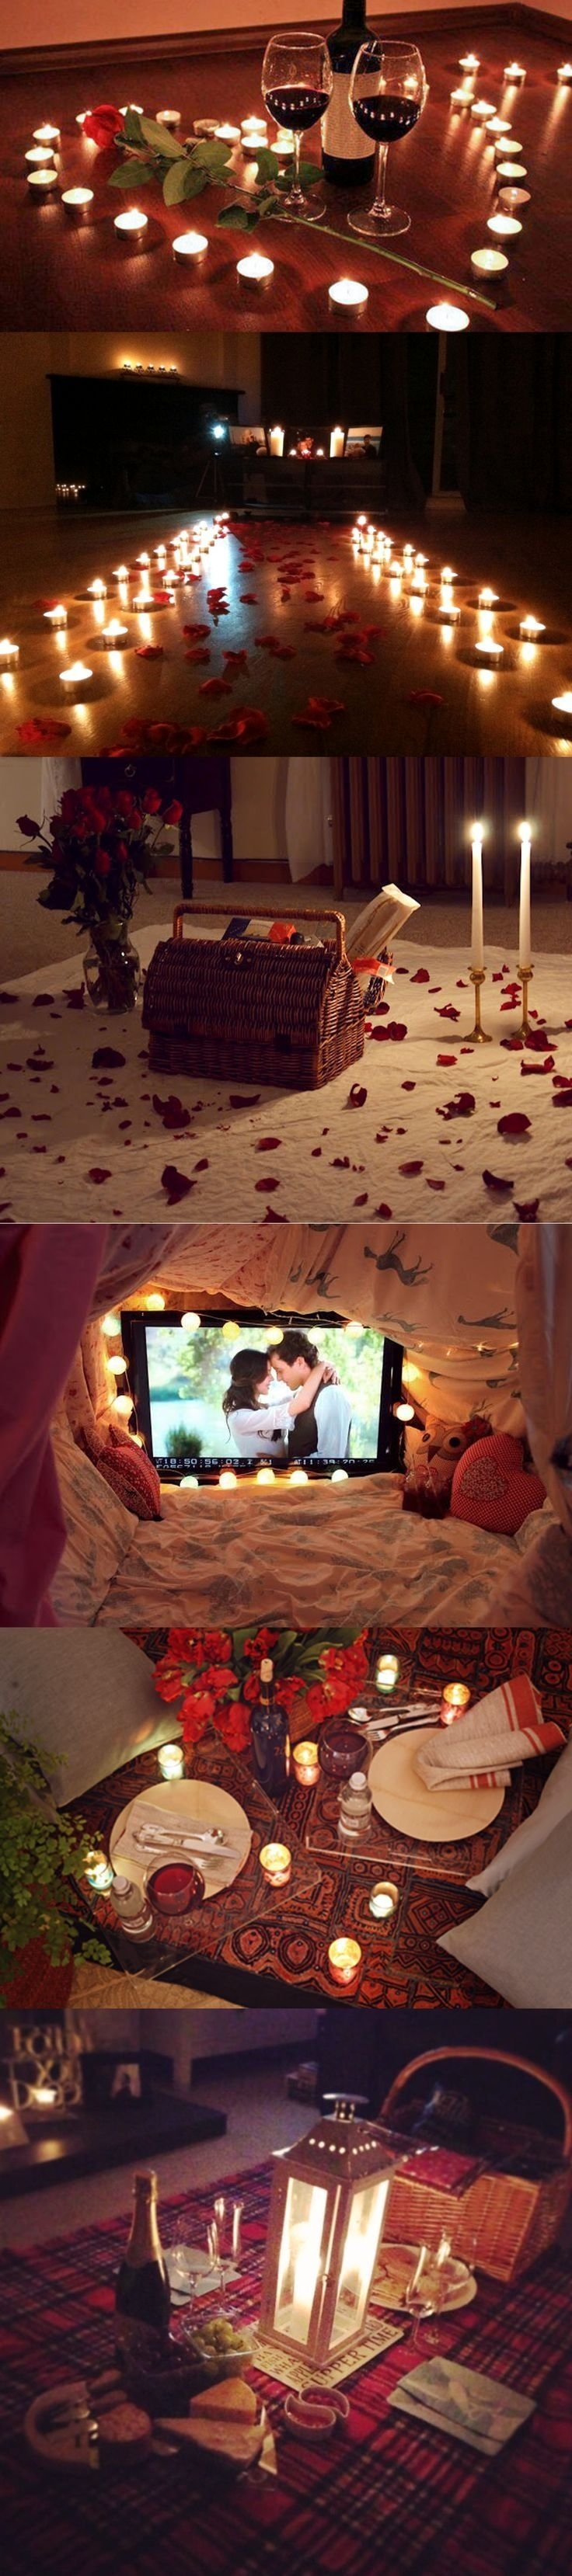 10 Stunning Good Bet Ideas For Couples 152 best date ideas images on pinterest my love romantic ideas 15 2020